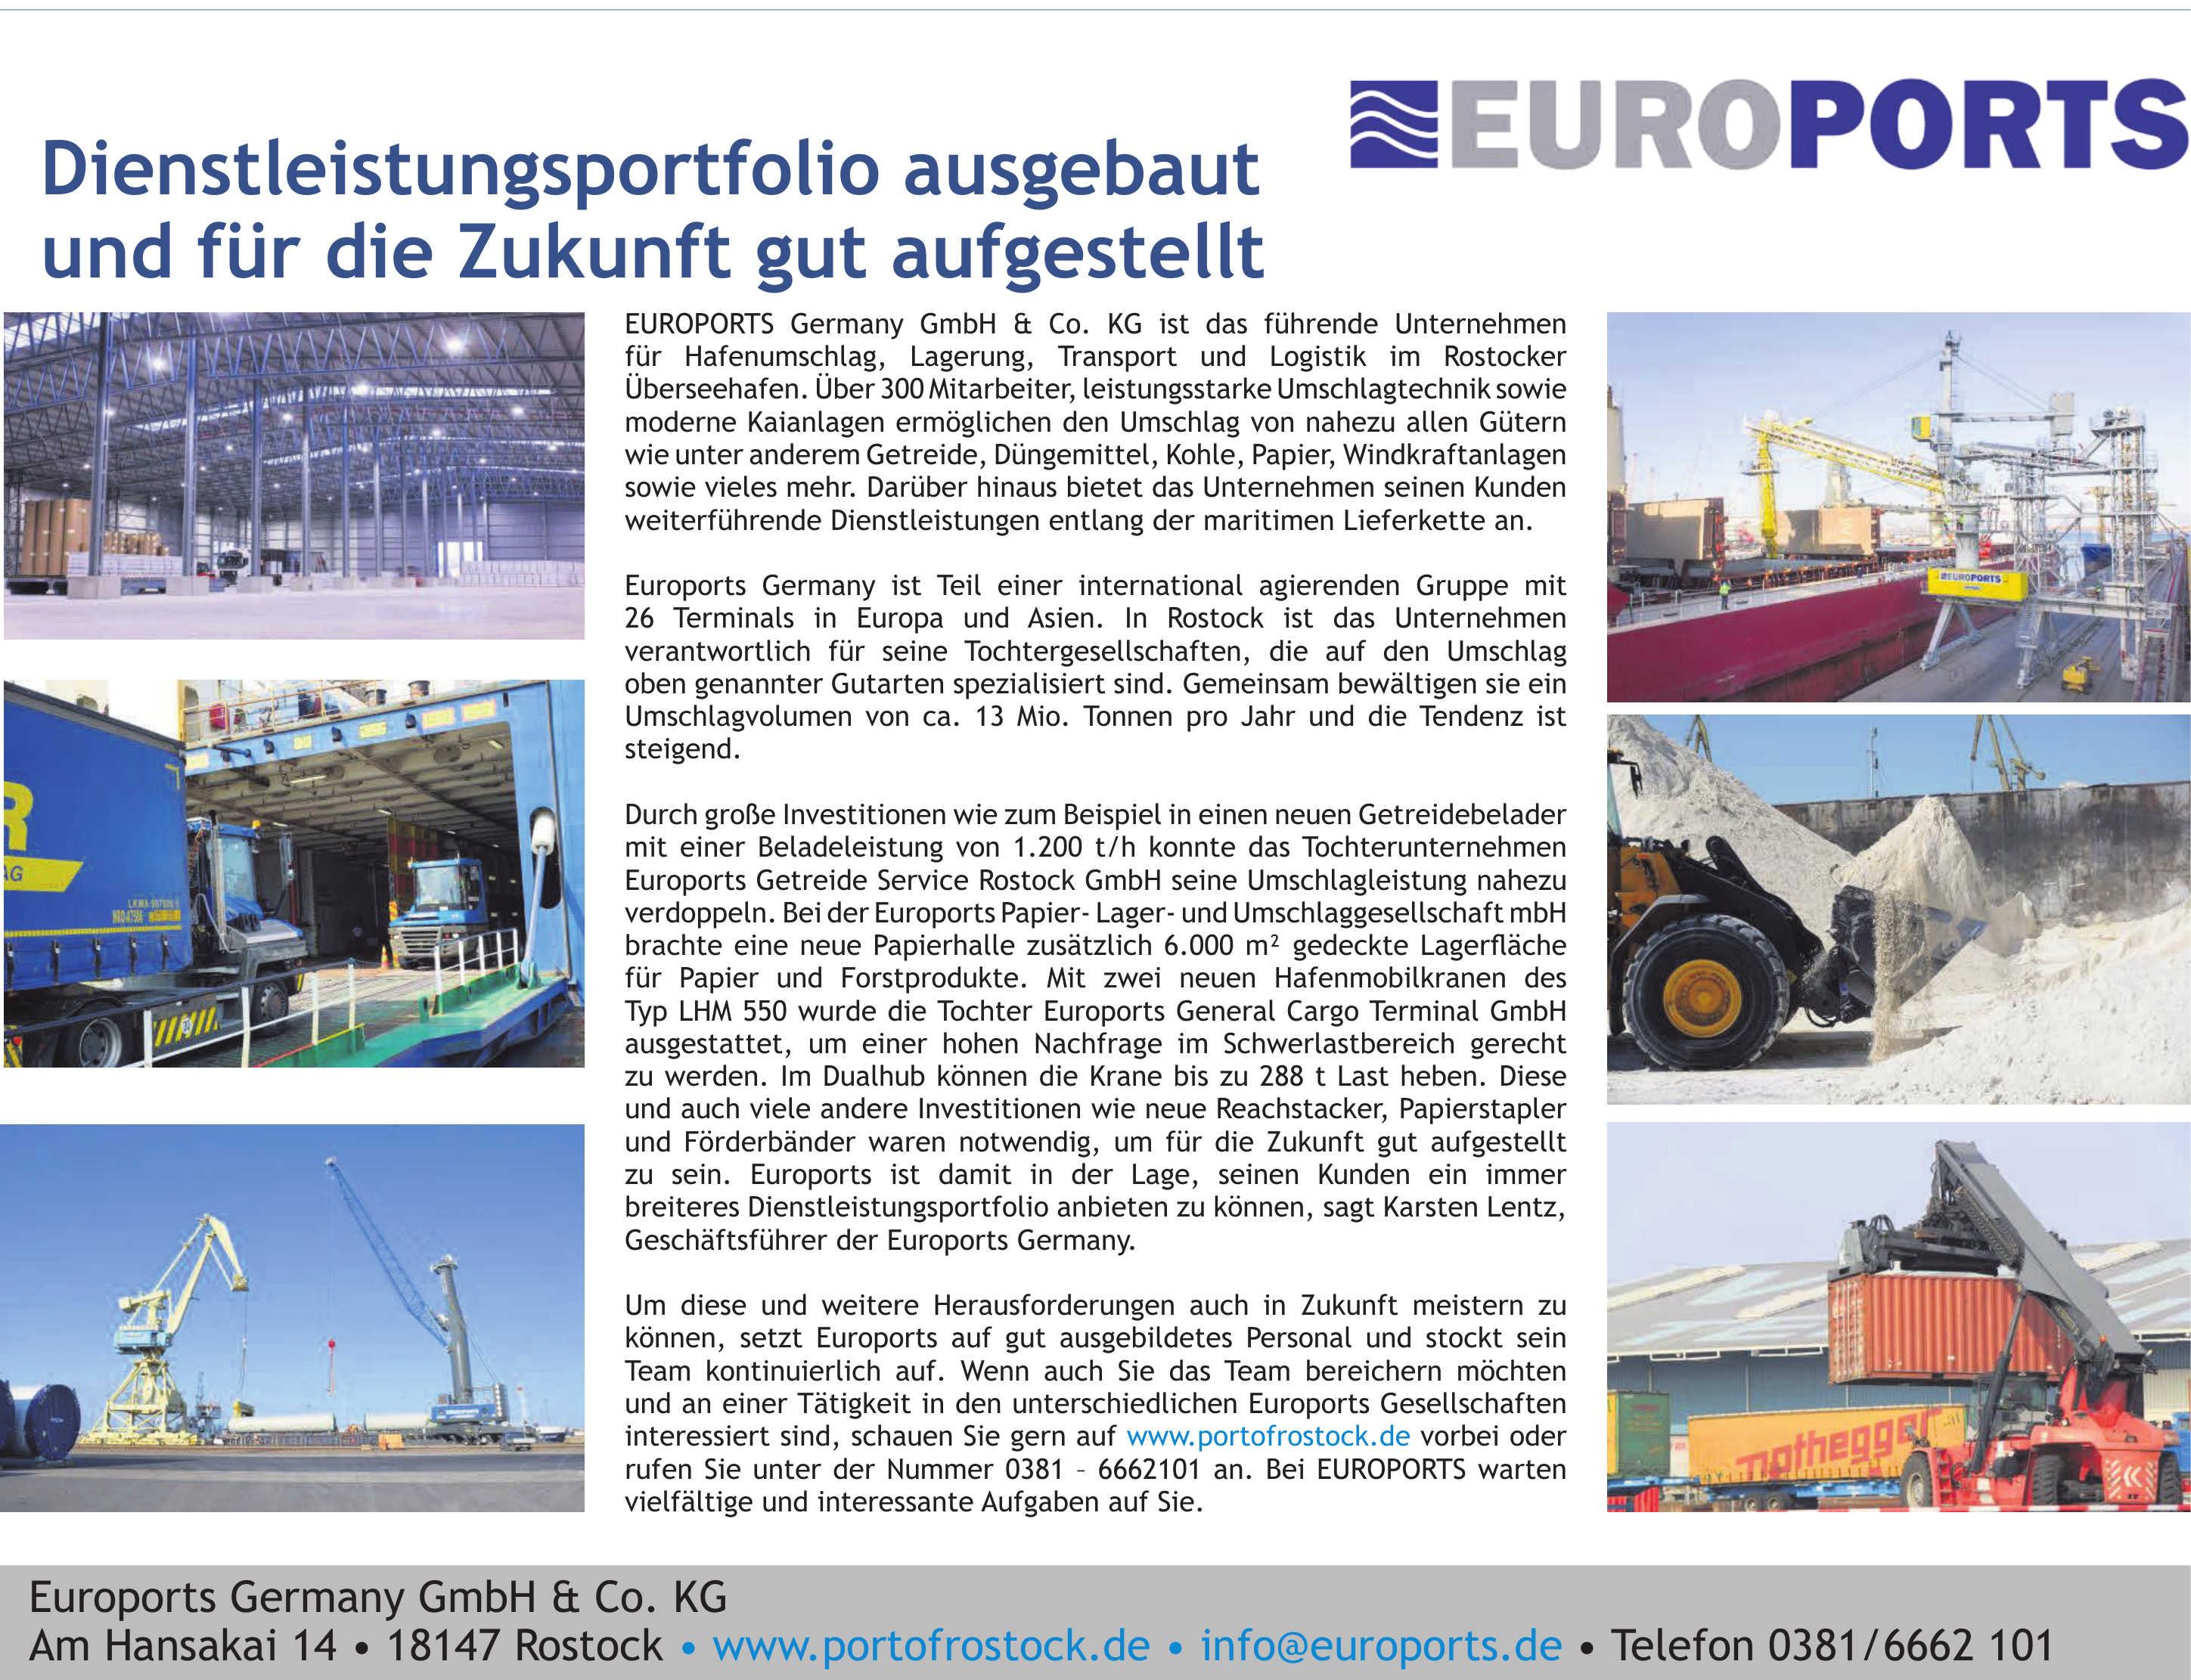 Euroports Germany GmbH & Co. KG